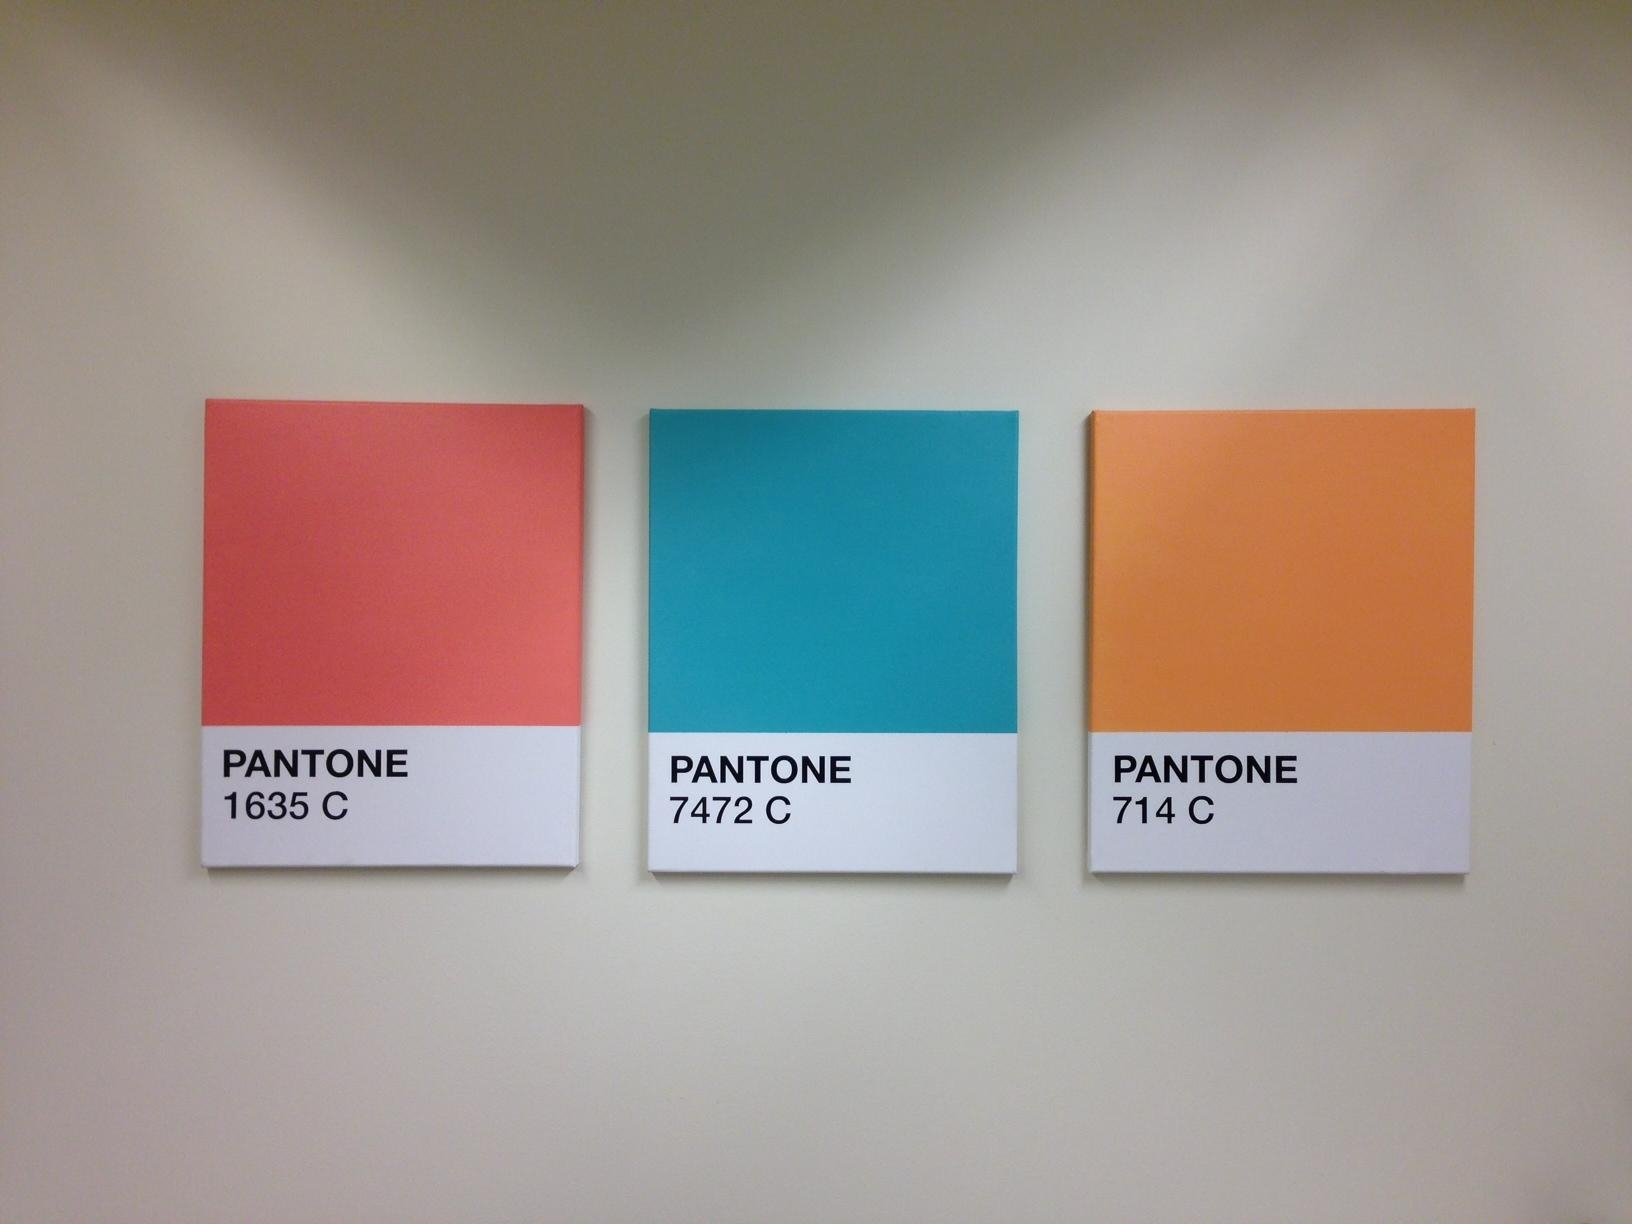 Beau Pantone Canvas Wall Art Color Swatches | The Rodimels Family Blog Regarding Wall  Art For Office